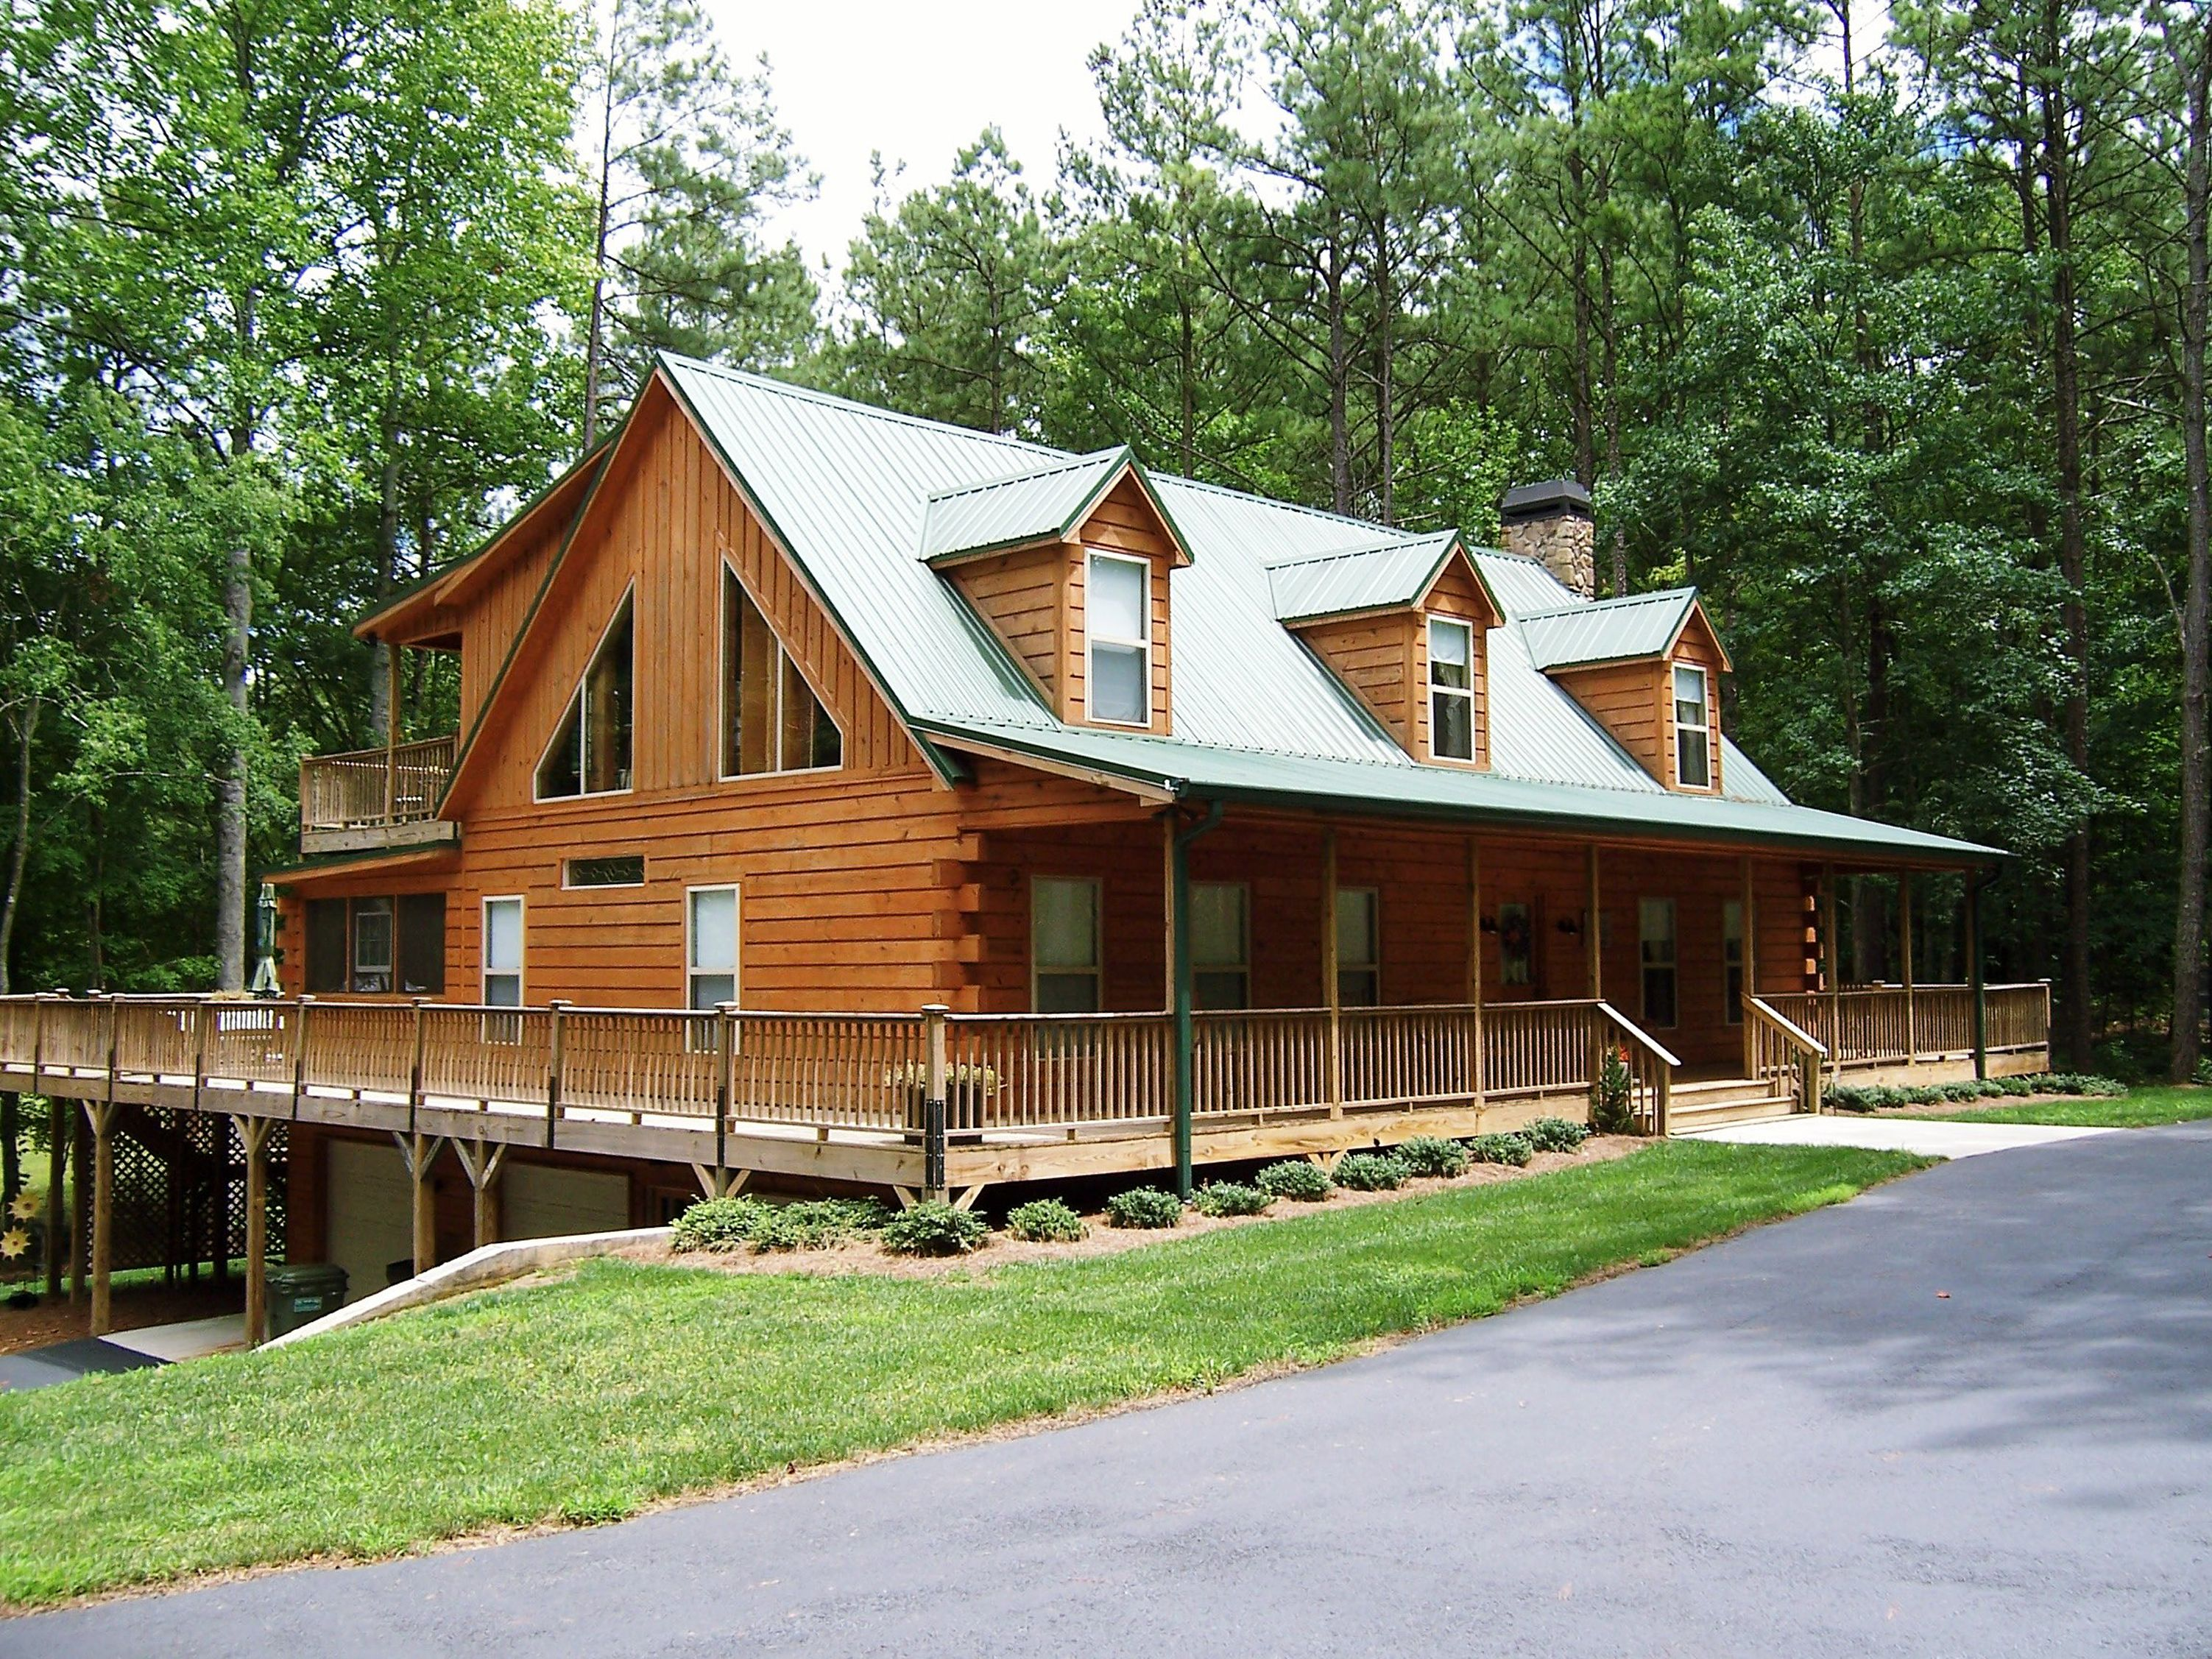 Medium Of Vinyl Log Siding